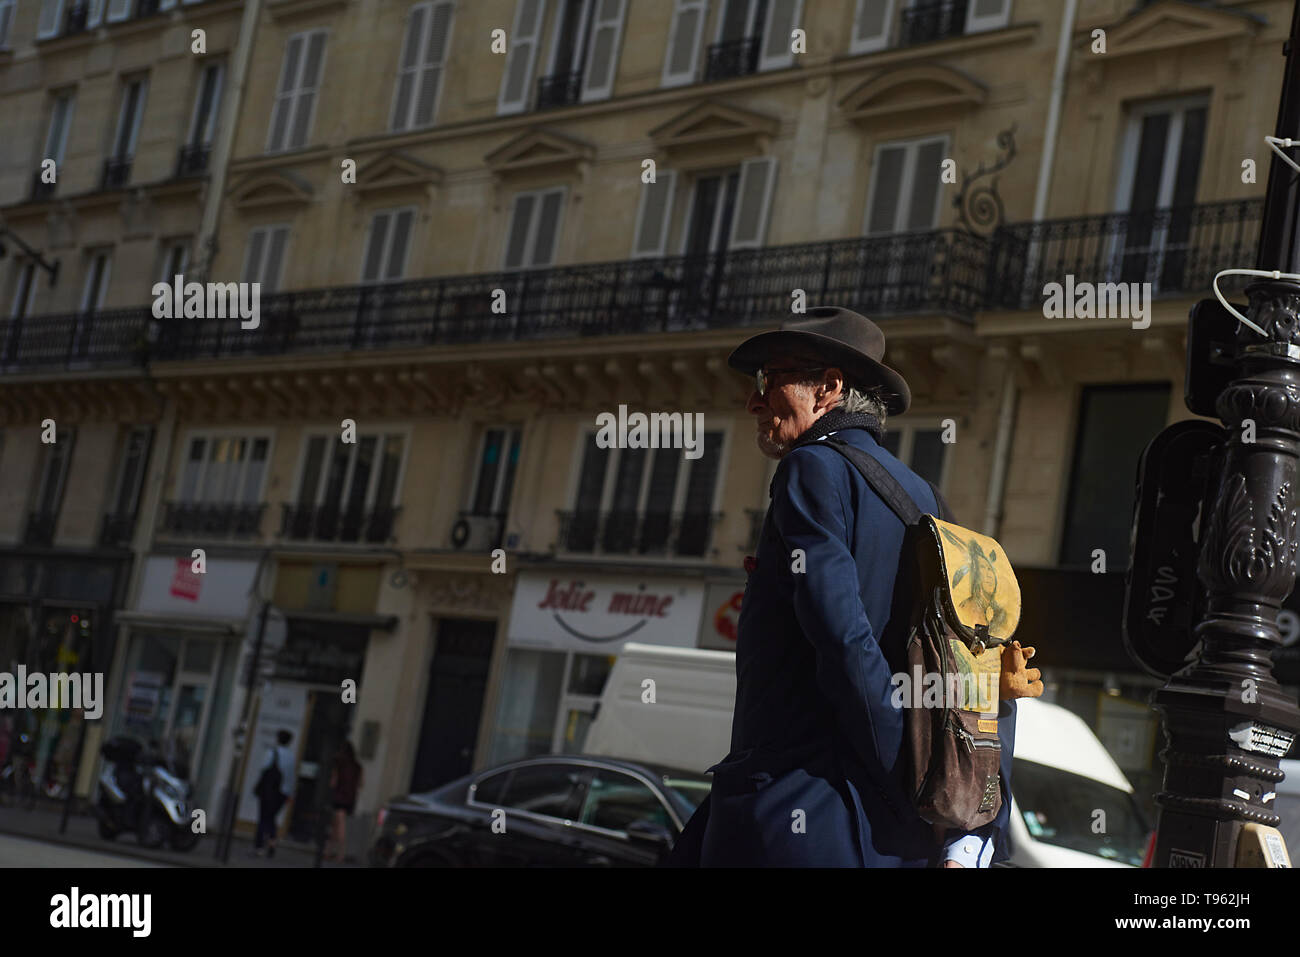 A man strolling and walking in the city centre of Paris exploring the city and its sights - Stock Image